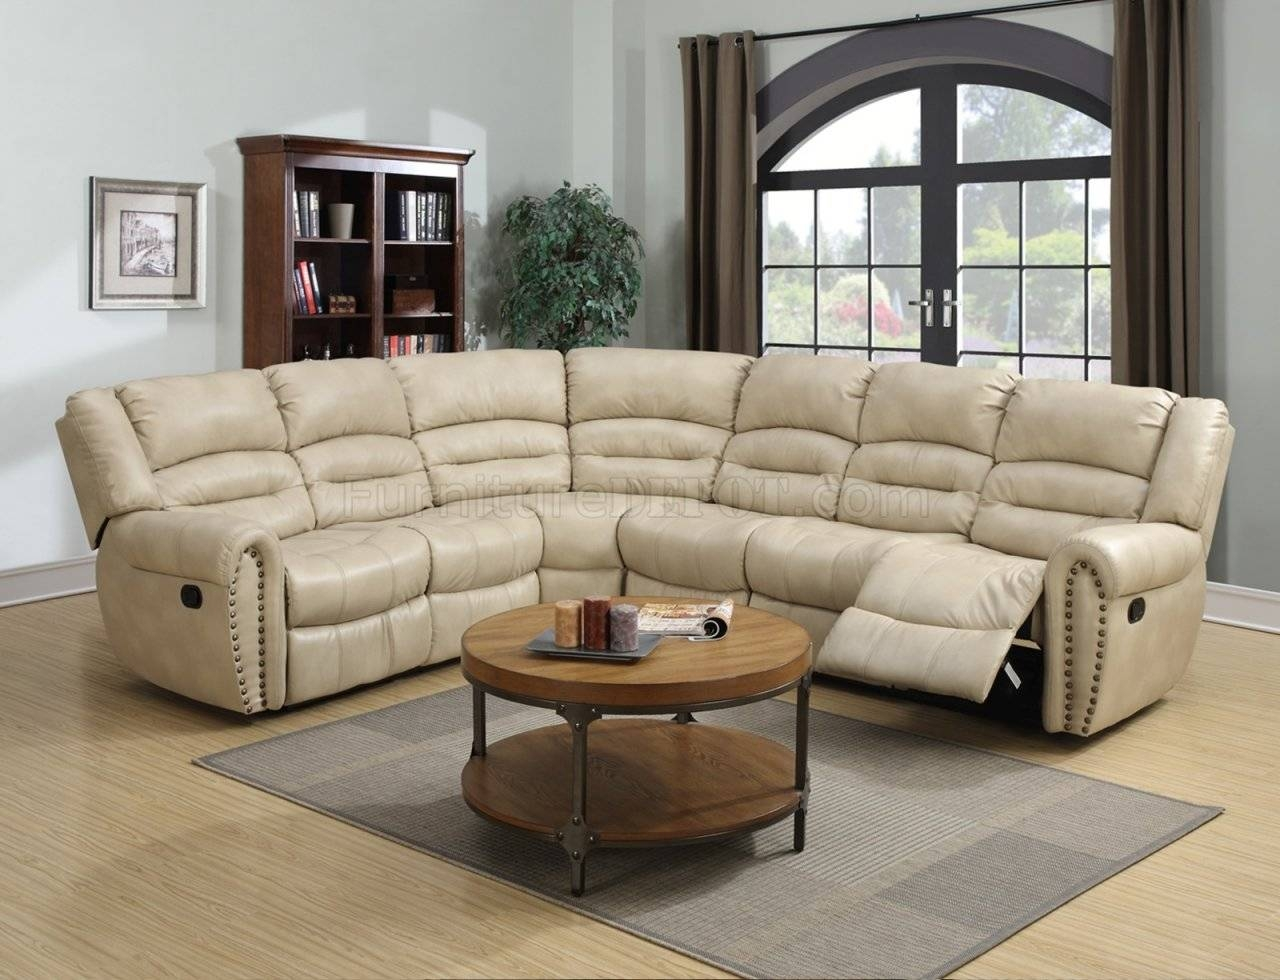 G687 Motion Sectional Sofa In Beige Bonded Leatherglory for Motion Sectional Sofas (Image 10 of 30)